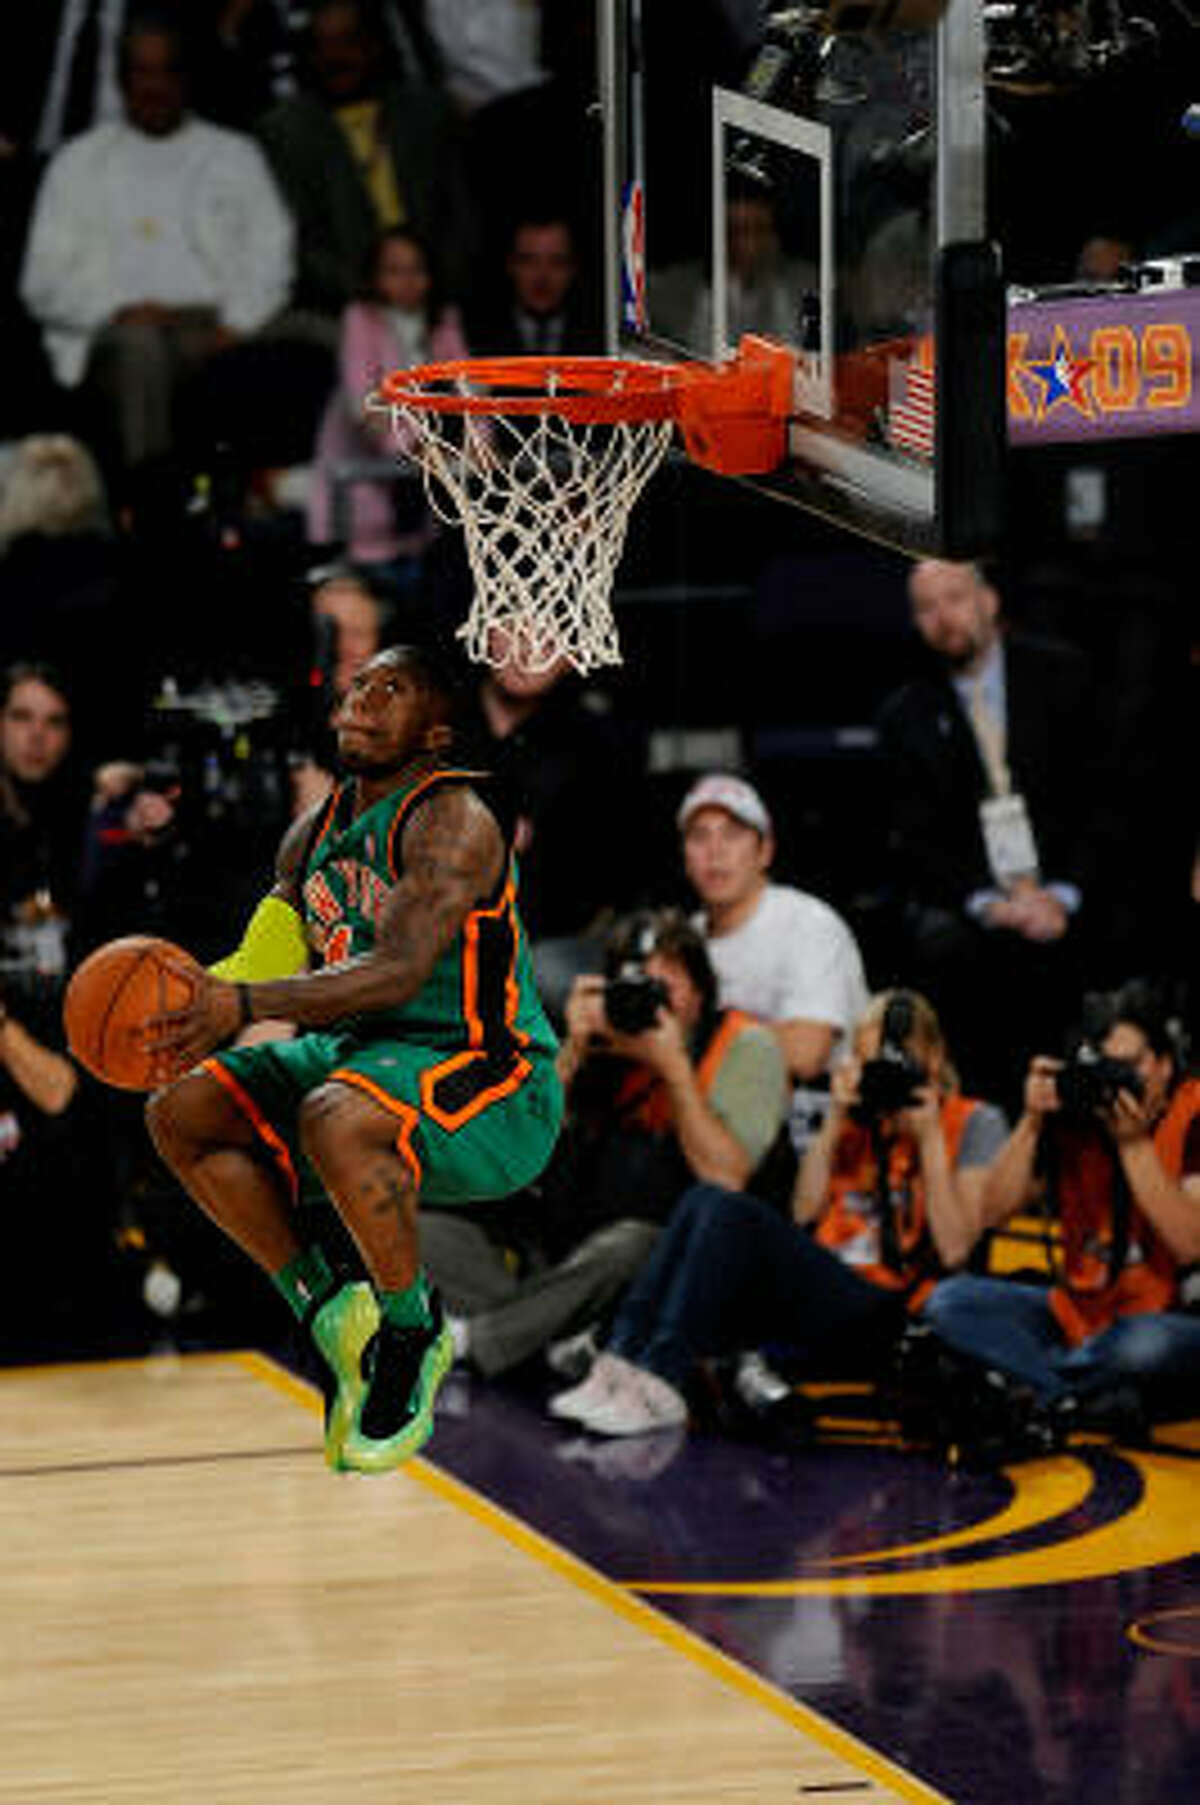 New York's Nate Robinson sends home a dunk in the finals of the Sprite Slam Dunk Contest.